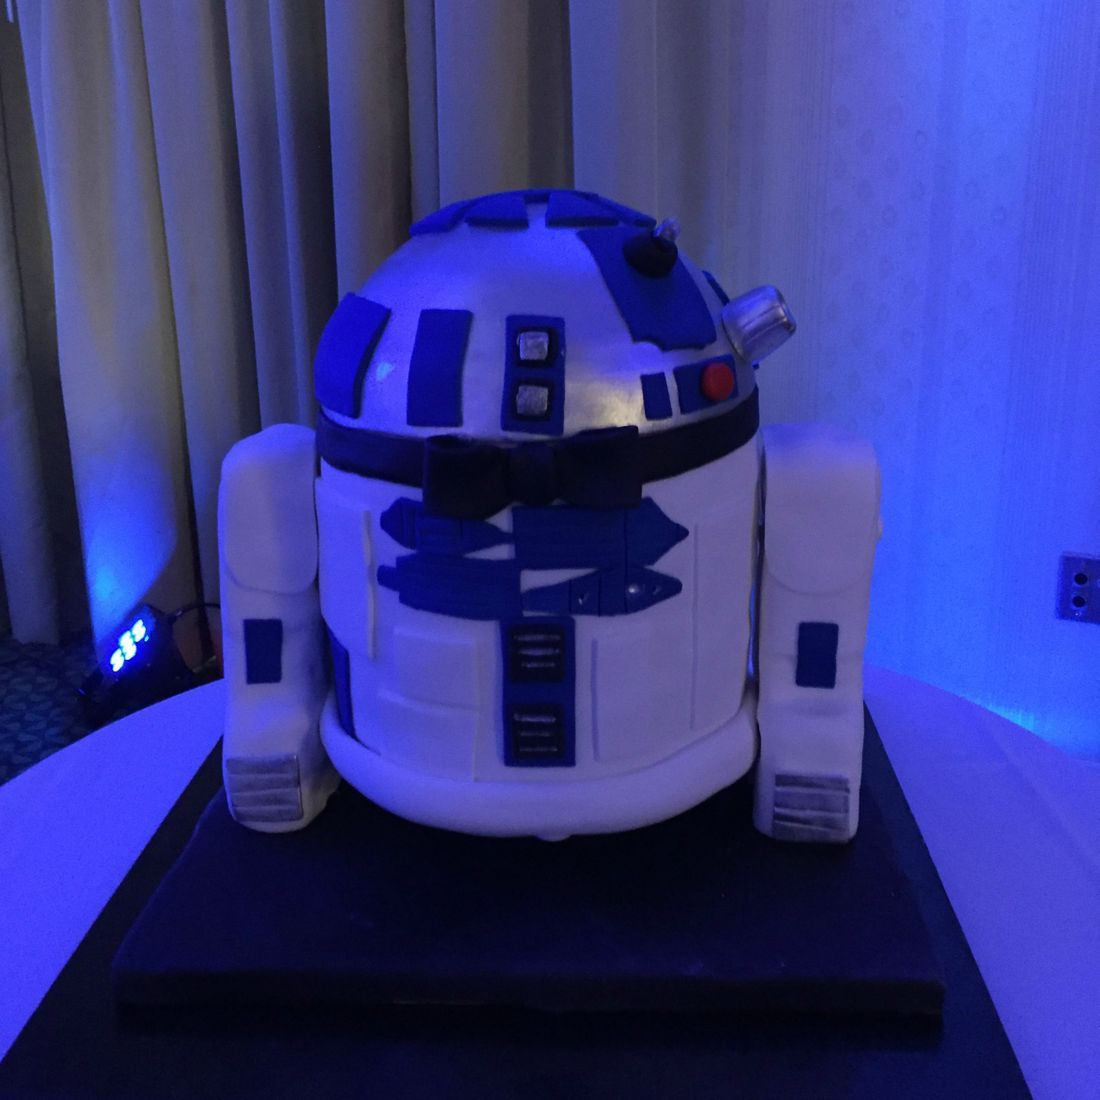 R2D2 grooms cake star wars cake 3d carved star wars cake